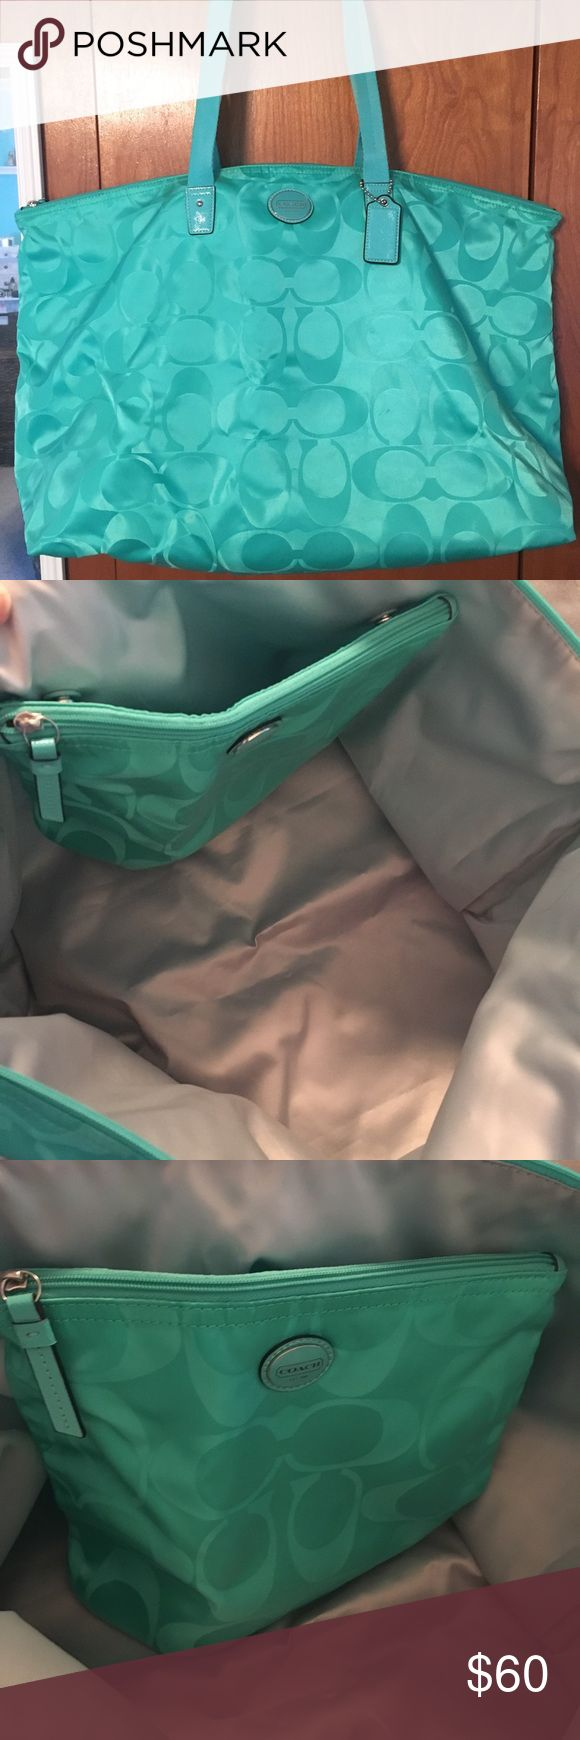 Coach tote bag. Large Coach tote bag, great condition, never used, no damage. Beautiful Seafoam green color. The pouch snaps to the inside of the tote. Tote has silver lining. Coach Bags Totes